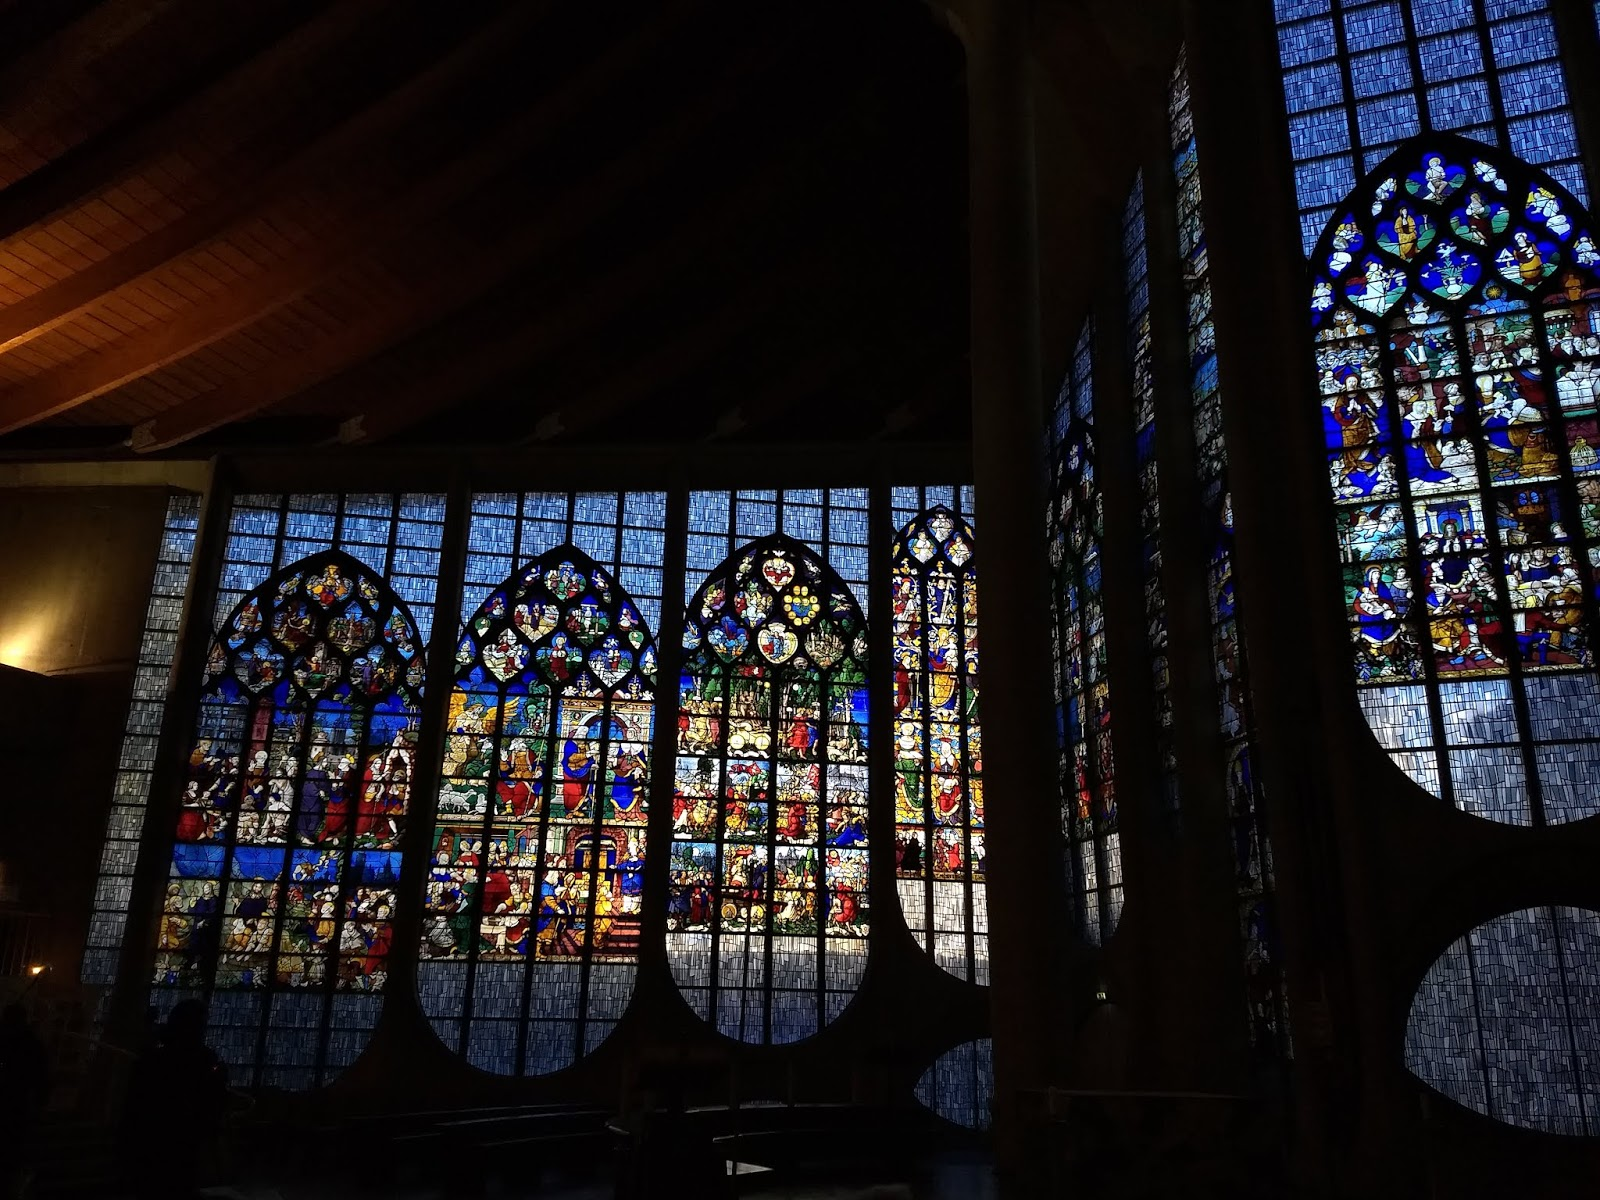 Stained glass window panes in the Joan of Arc Church in Rouen.